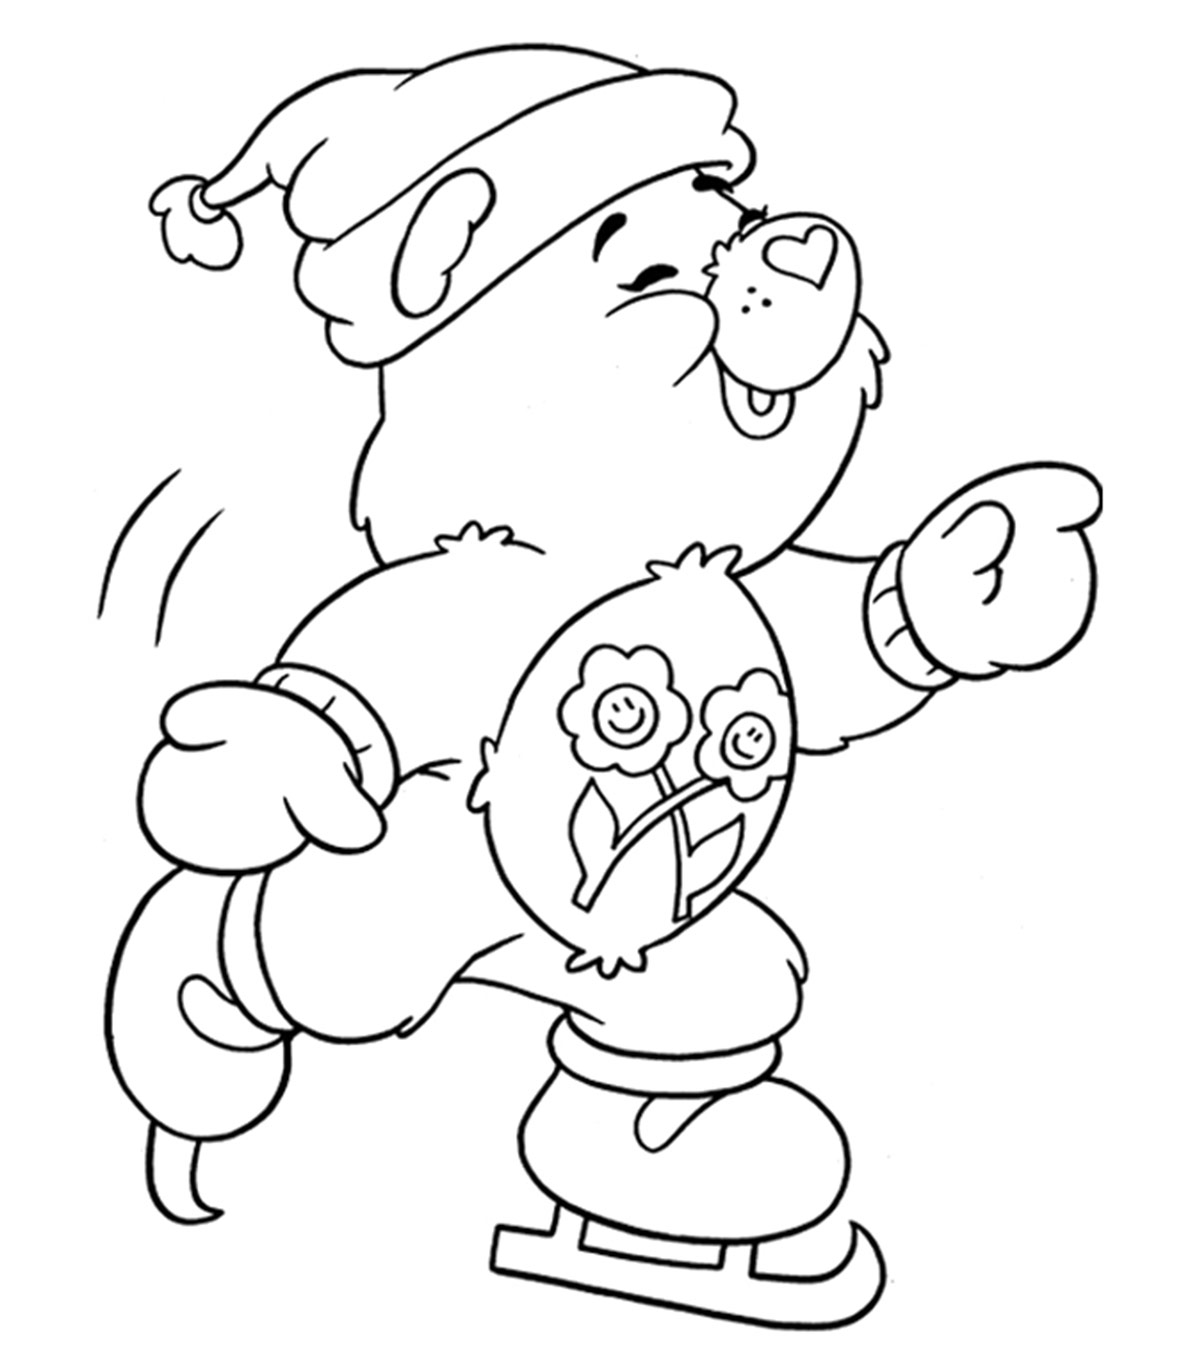 snow coloring page snow white coloring pages best coloring pages for kids coloring snow page